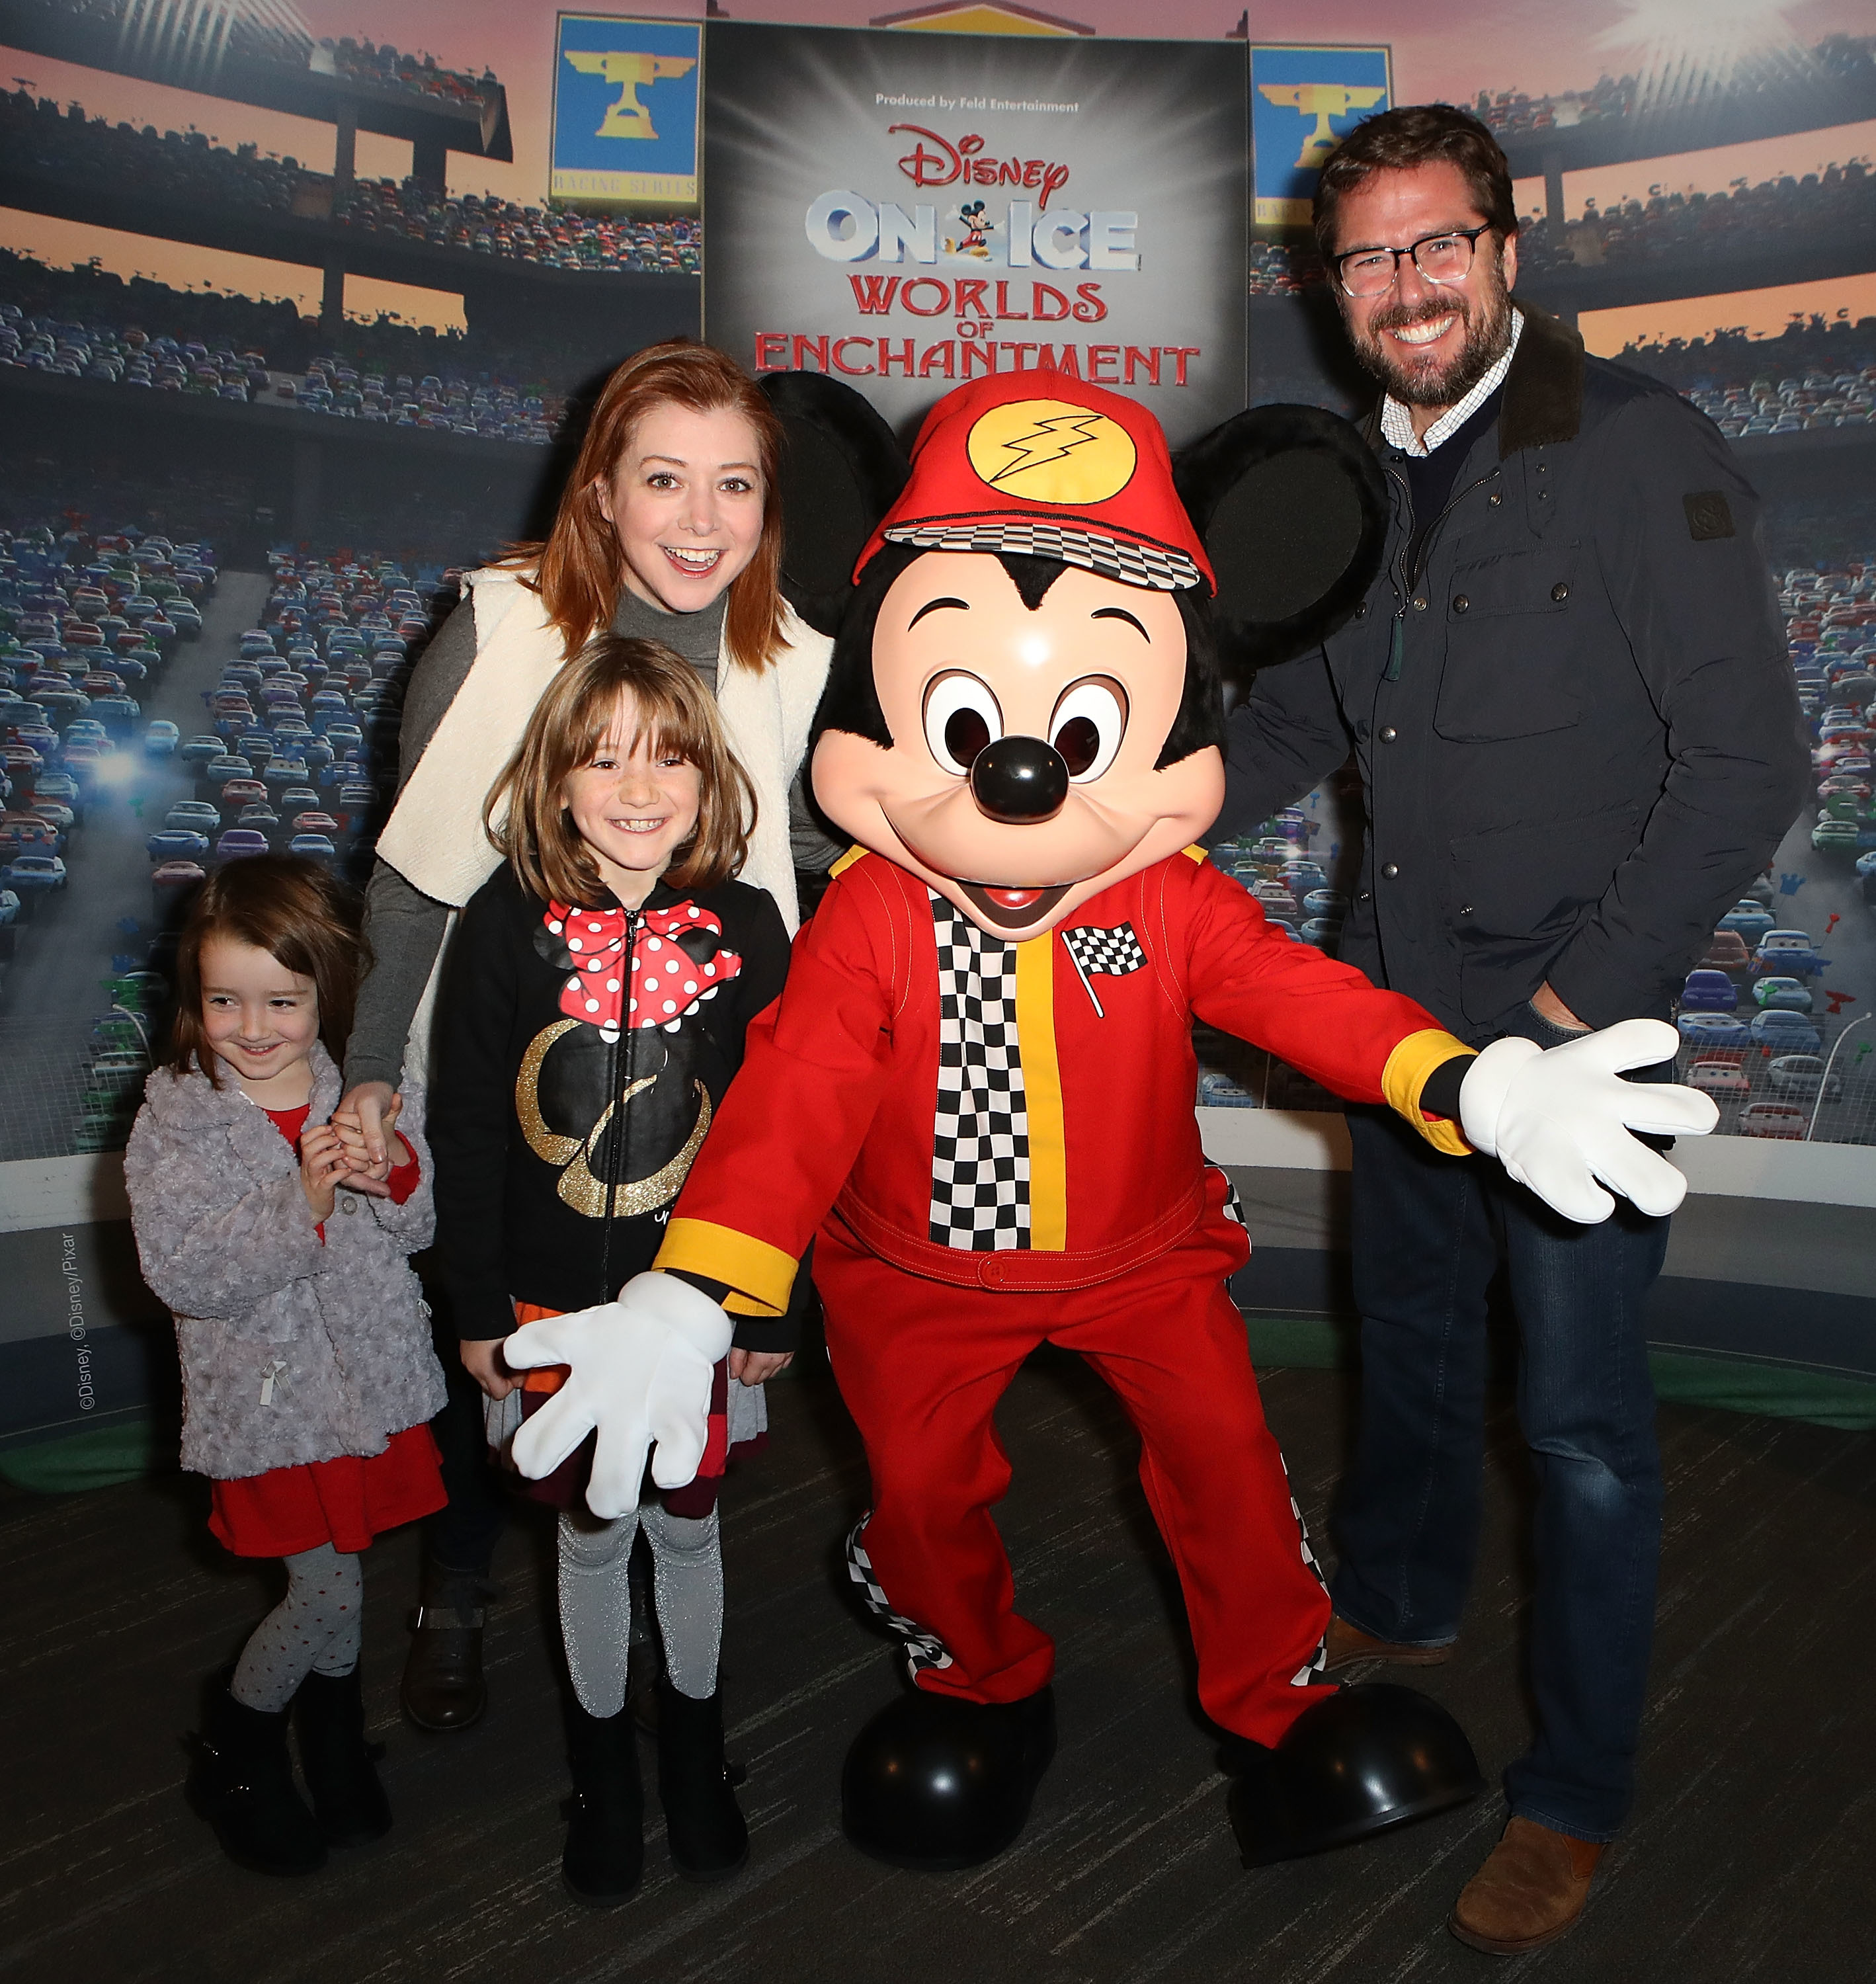 Alyson Hannigan, Alexis Denisof and their daughters, Keeva and Satyana, attend Disney On Ice presents Worlds of Enchantment at Staples Center in Los Angeles on Dec. 17, 2016.